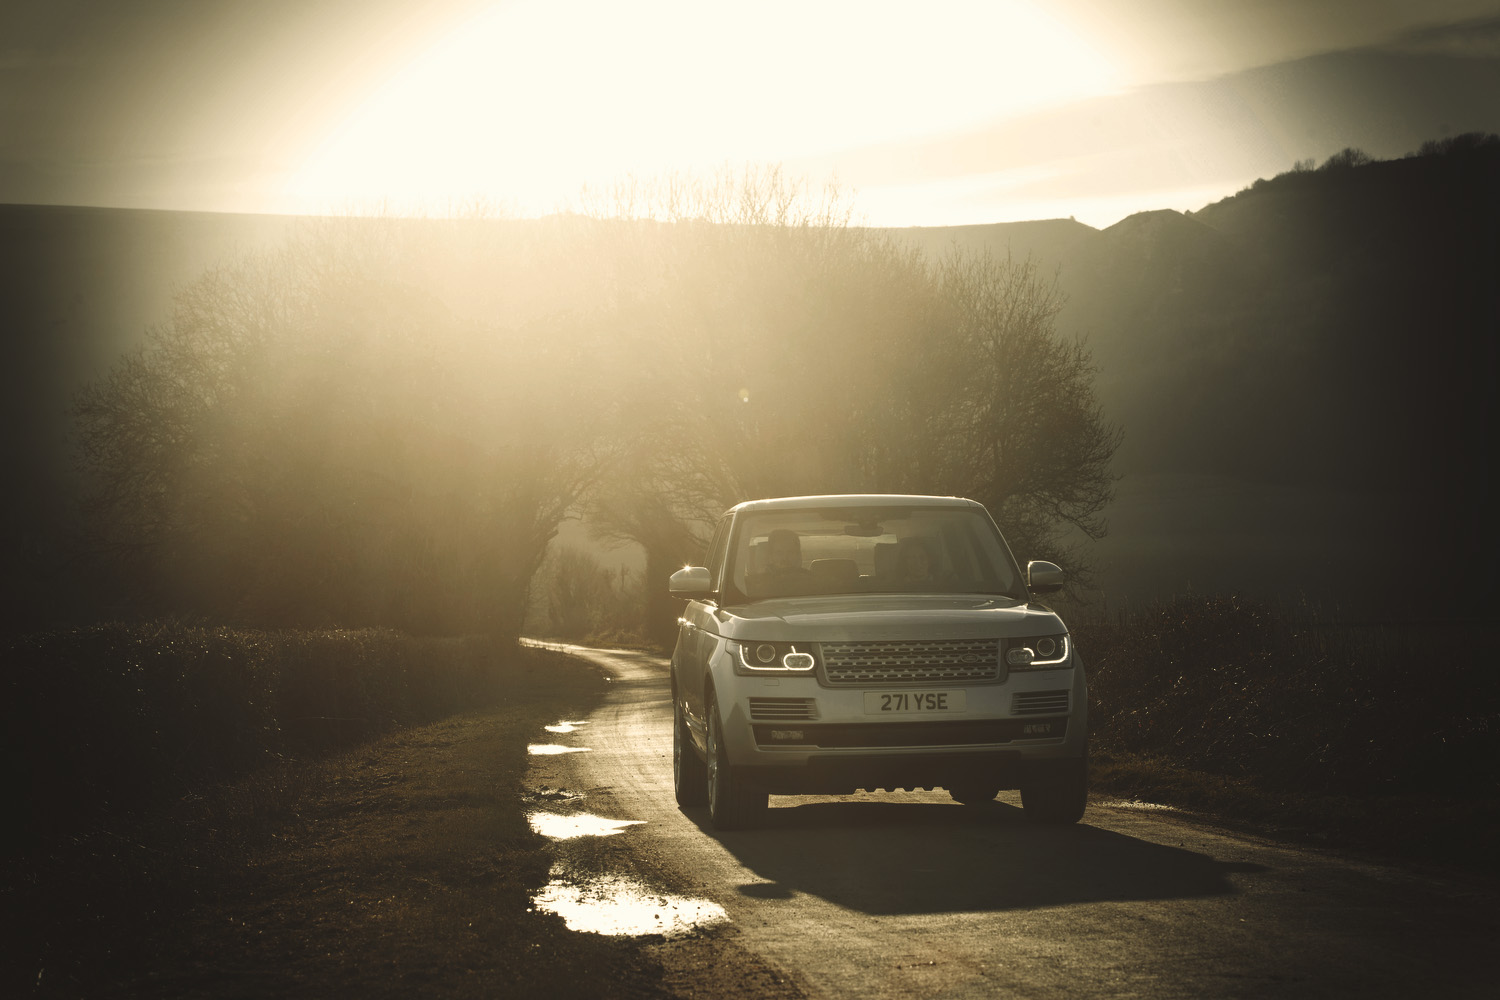 Range Rover Commercial advertising automotive photography shoot.  off road in the Sussex for Land Rover. Packshot. Highlighting the Great British Outdoors, craftmanship, rural life and heritage brands. food photography still life.